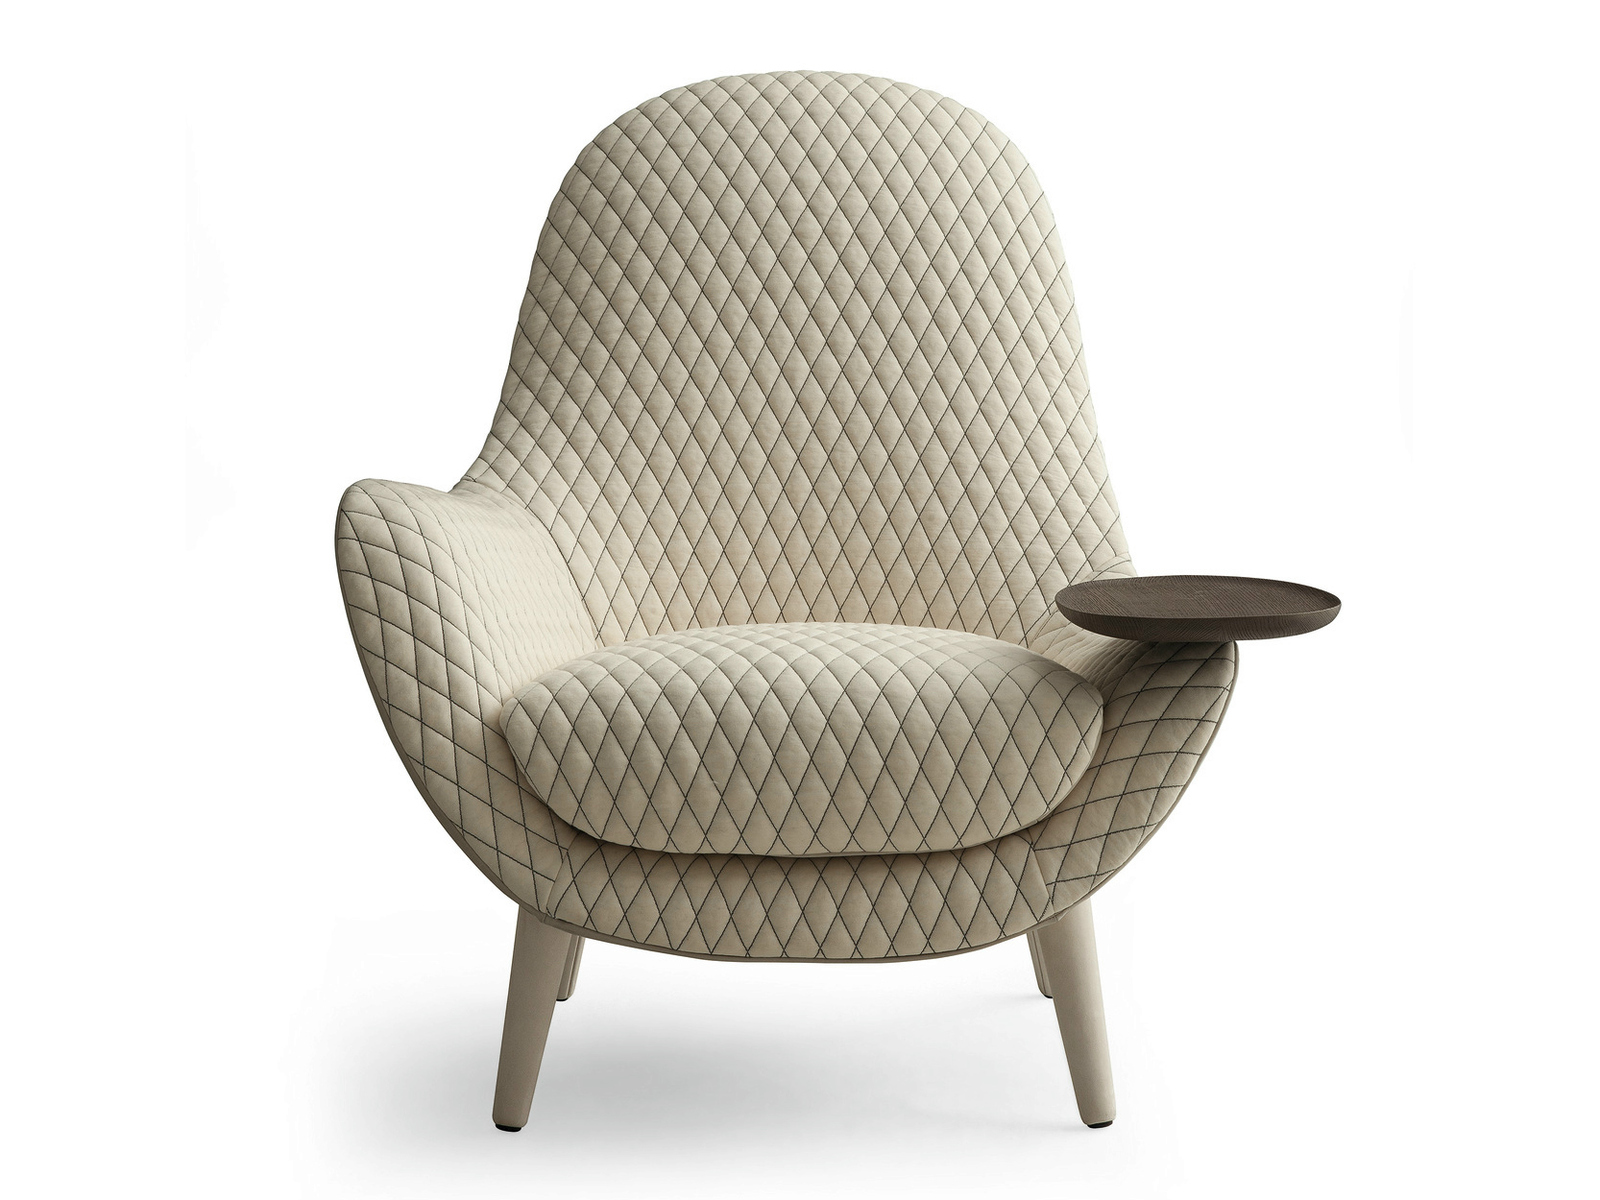 view in gallery lounge armchair mad king  soft upholstery thumb xauto lounge armchair mad king by marcel. lounge armchair mad king by marcel wanders for poliform